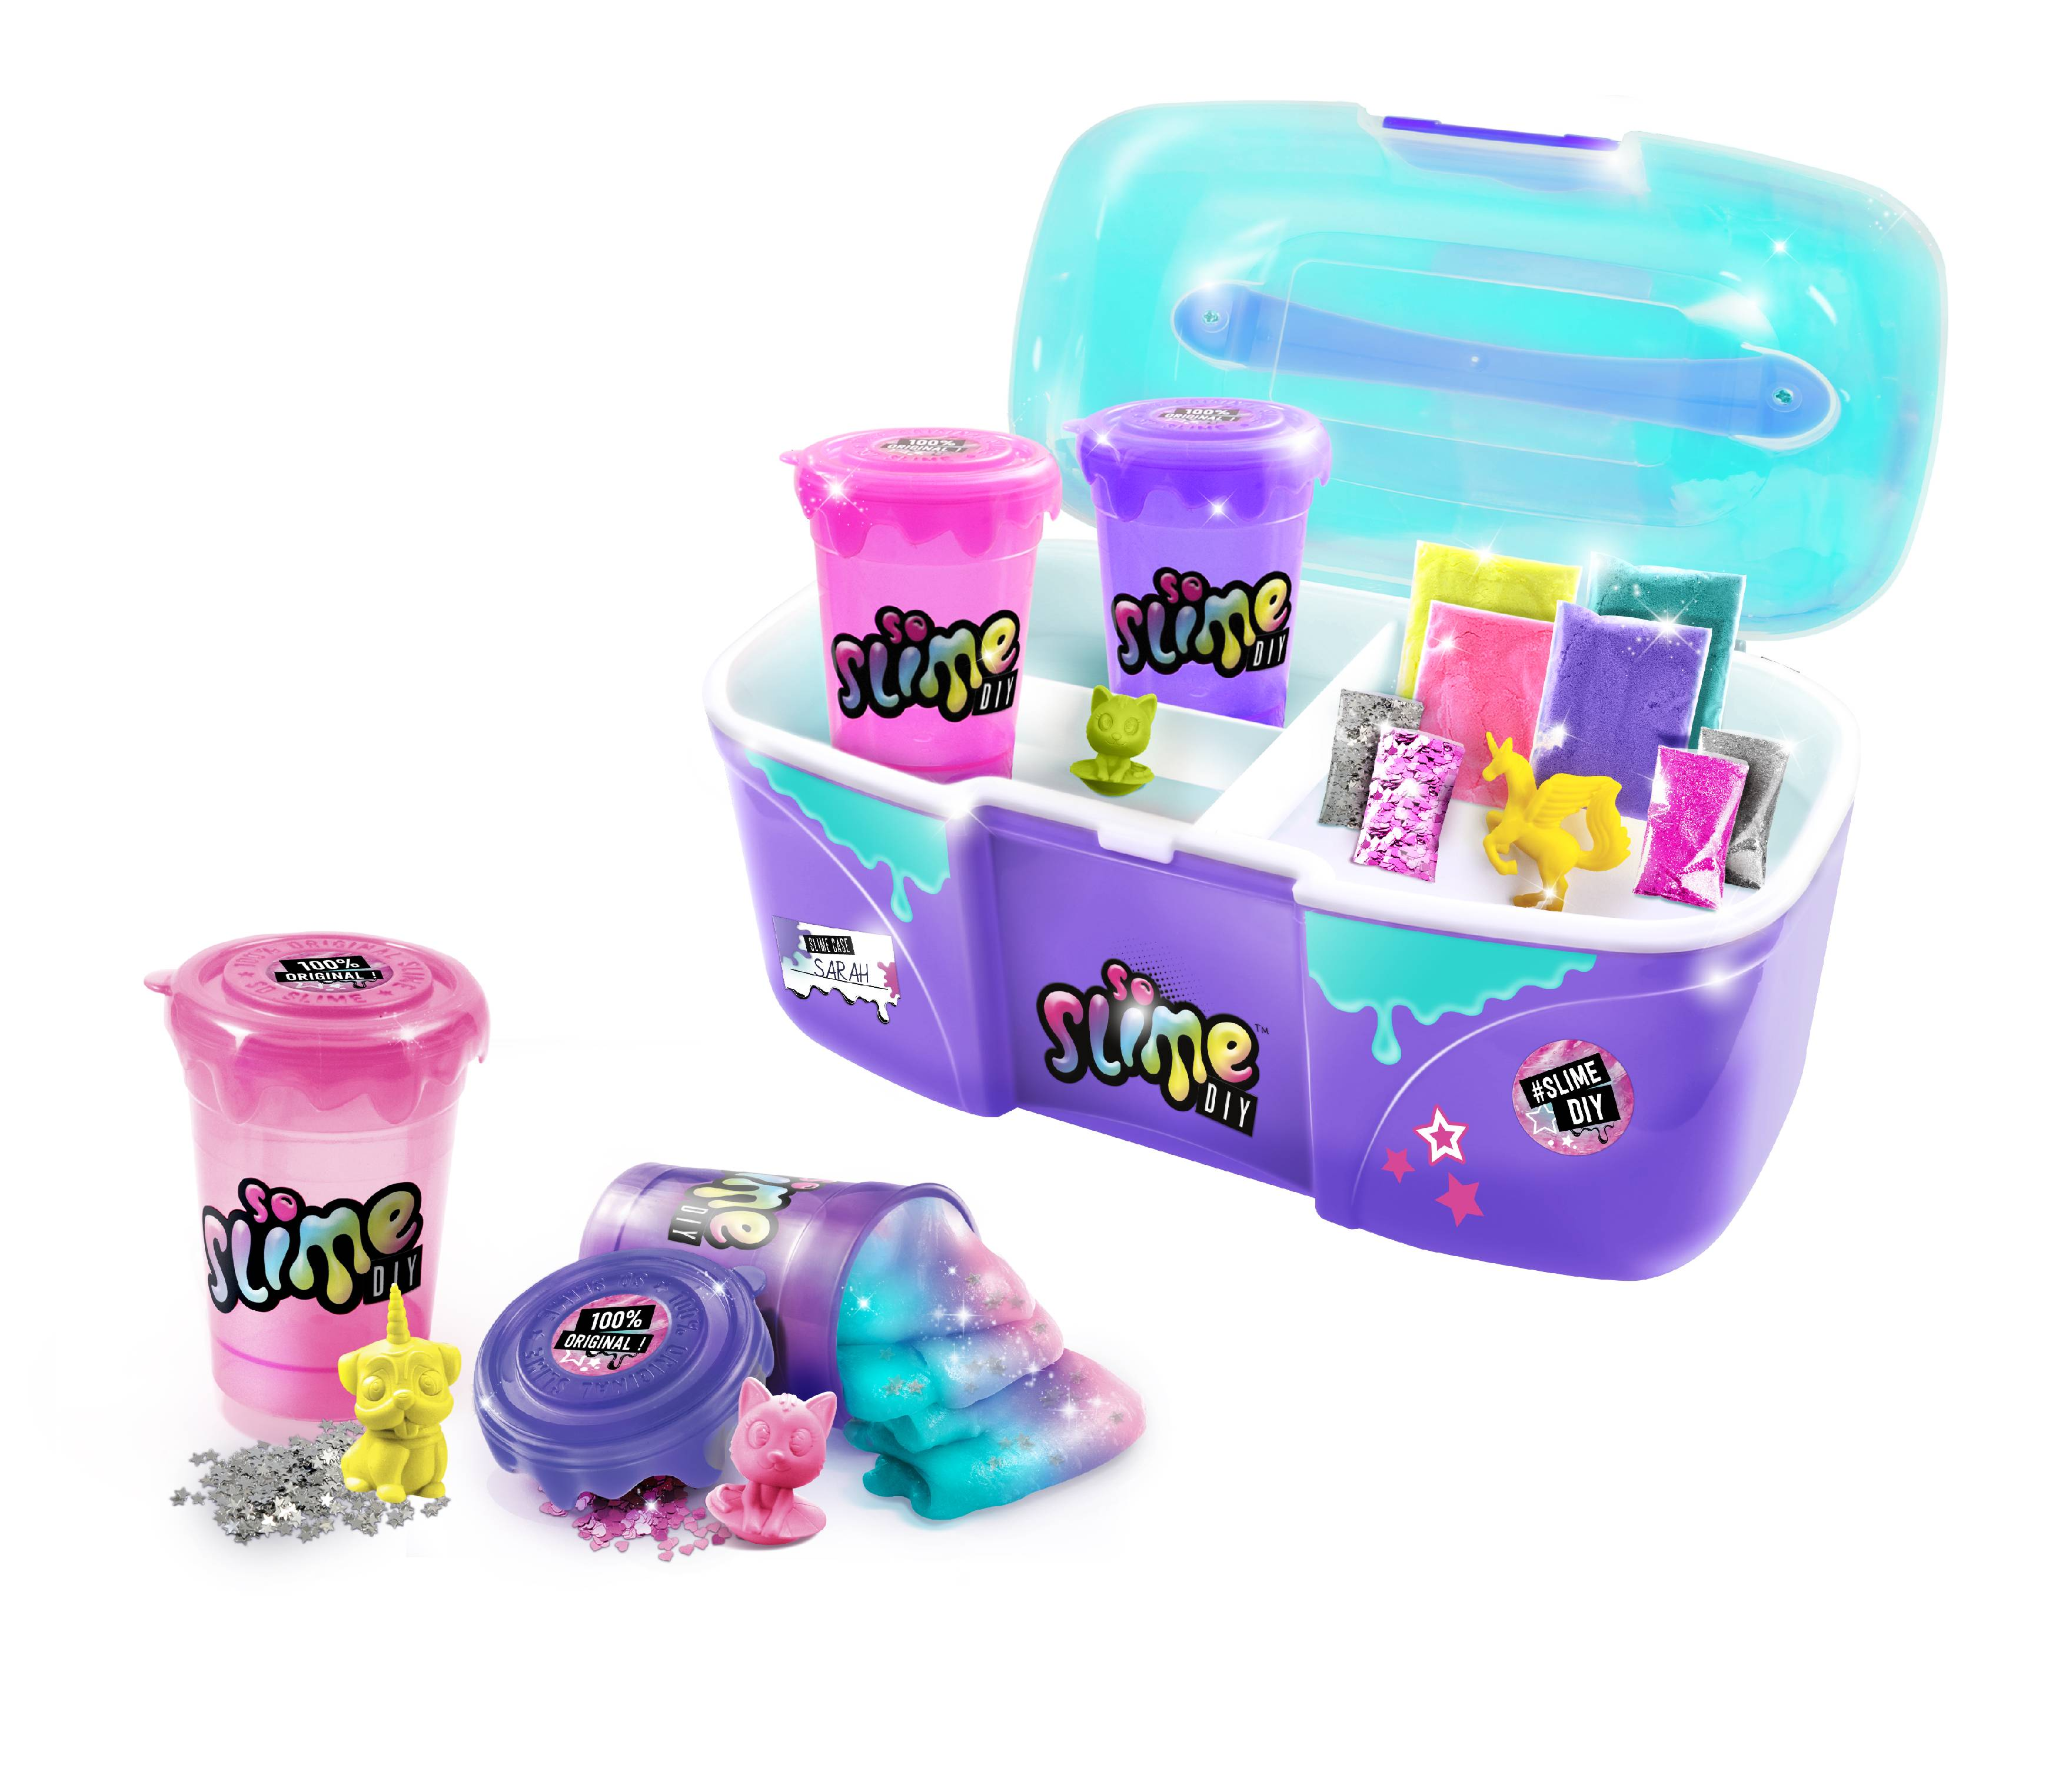 So Slime Factory Shaker Storage containers to hold your slime free shipping new